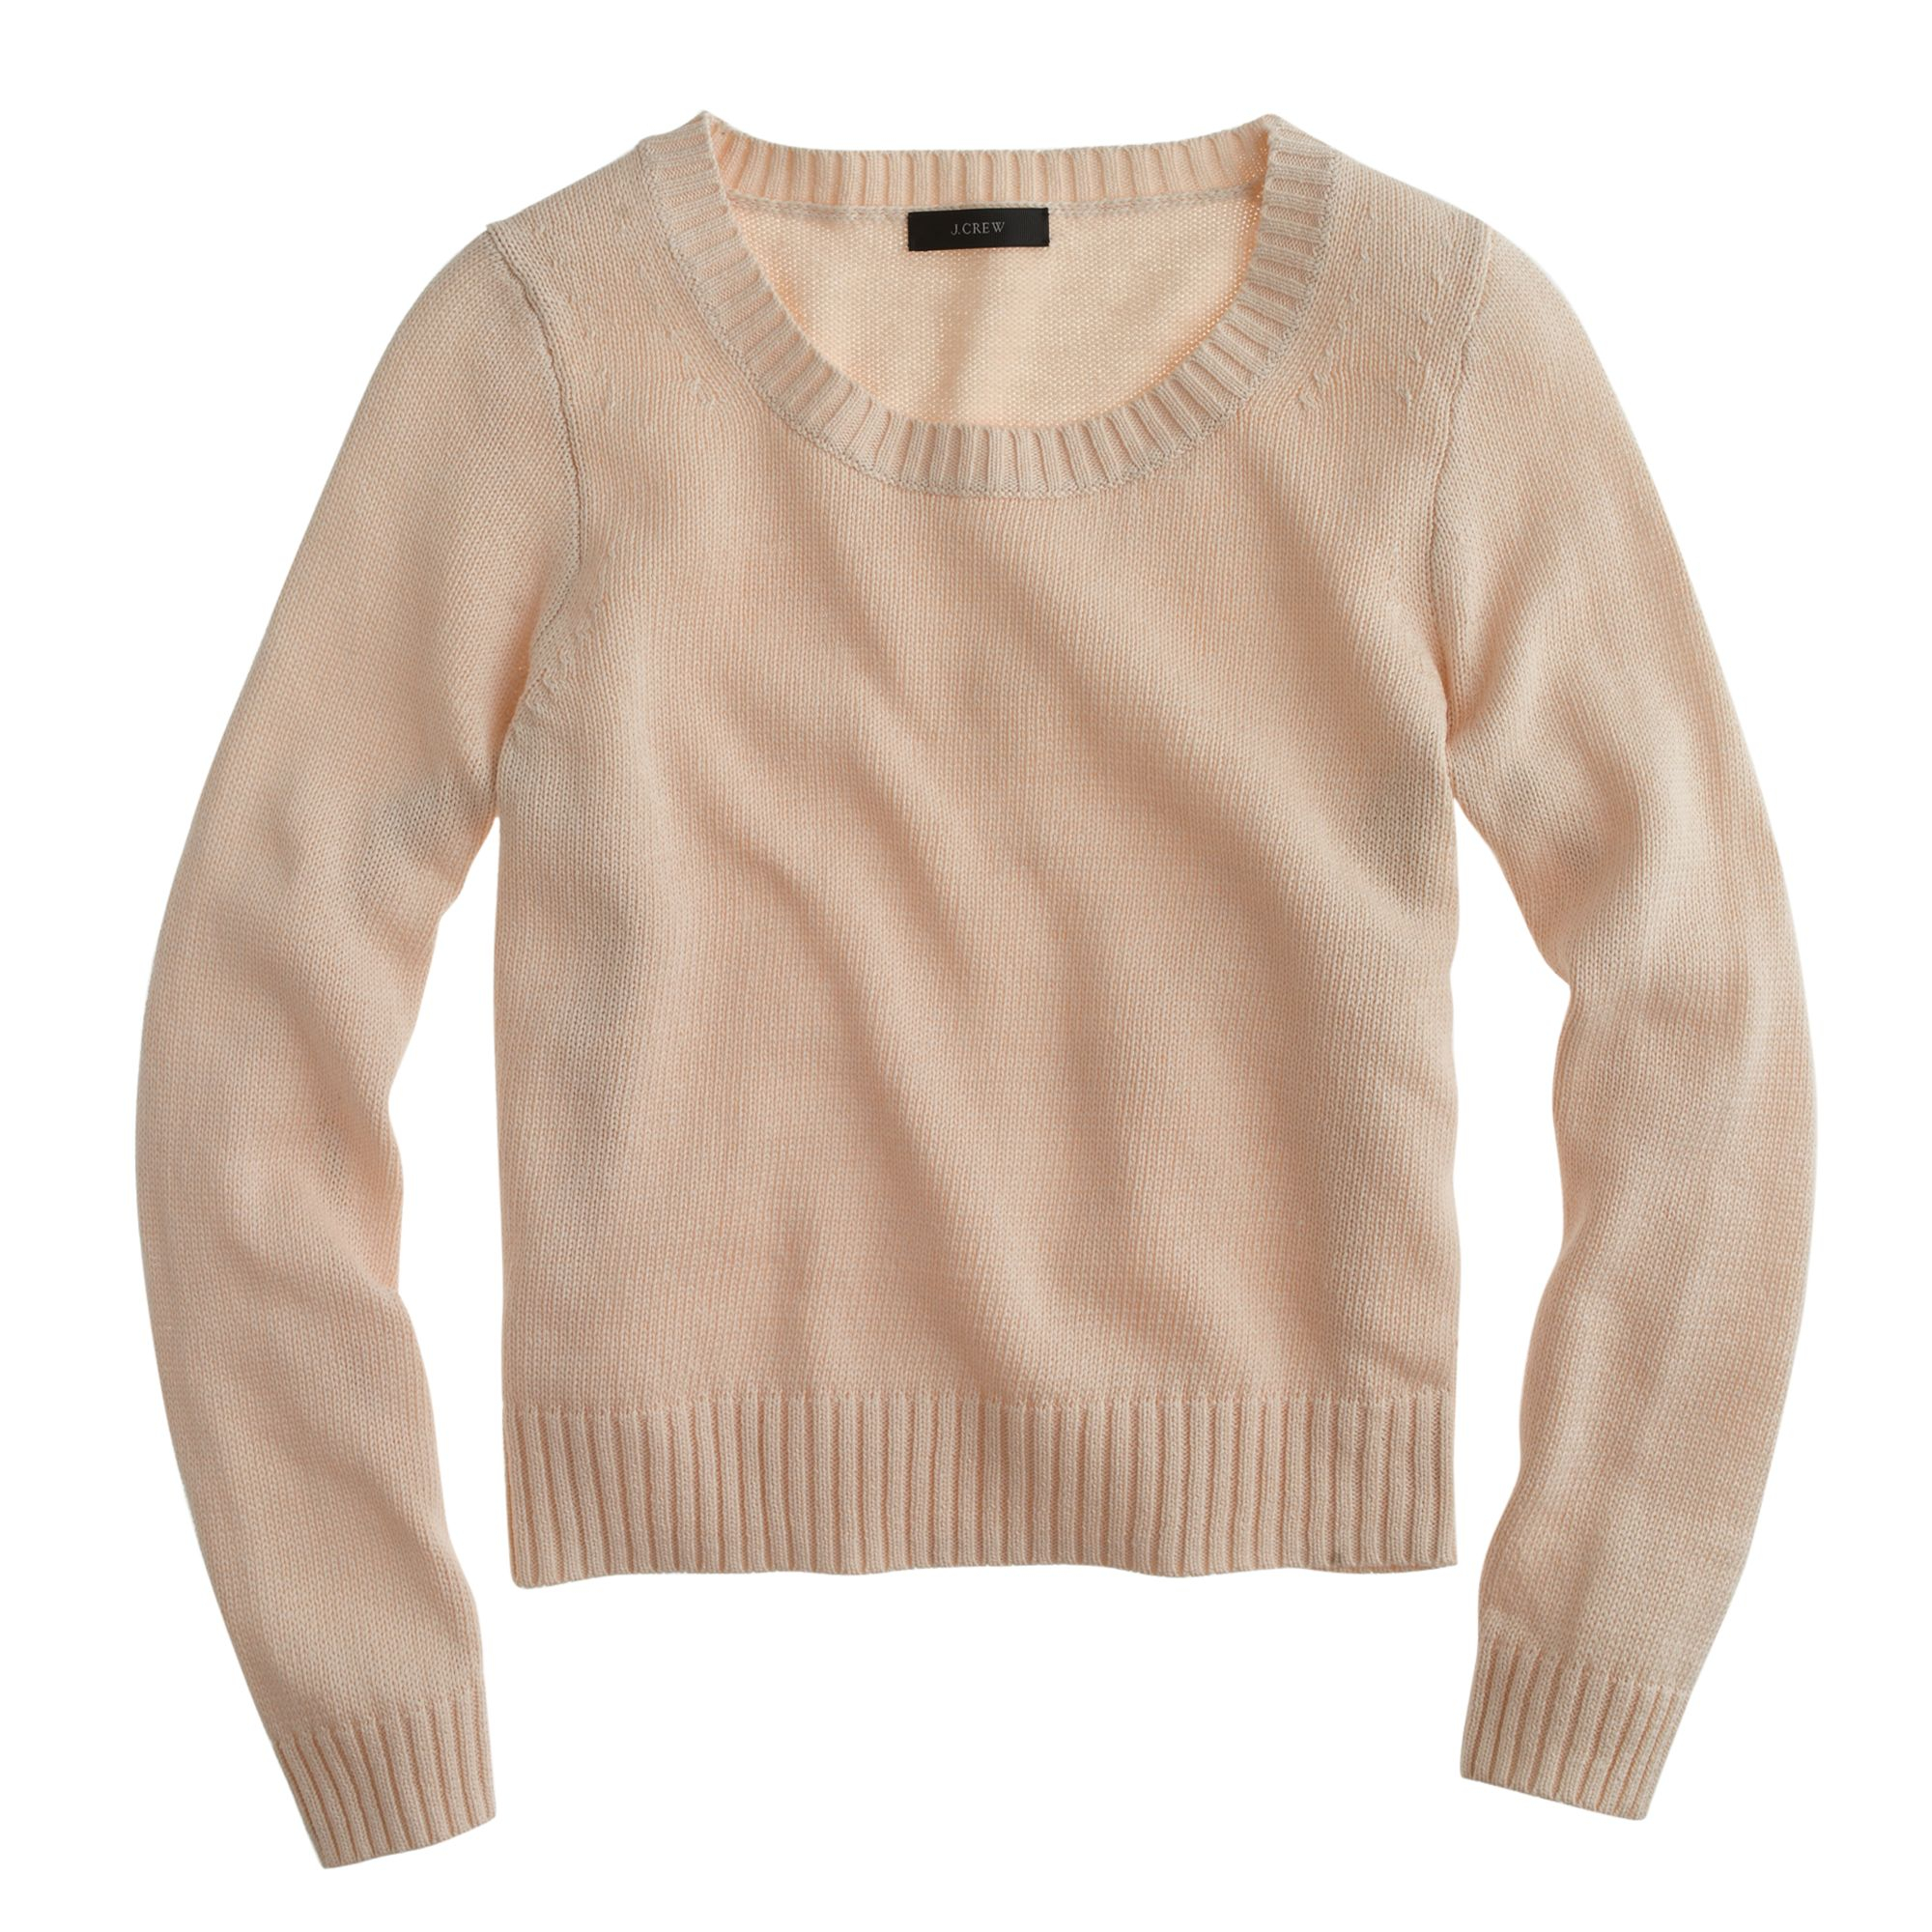 J.crew Cotton Cropped Sweater in Brown | Lyst